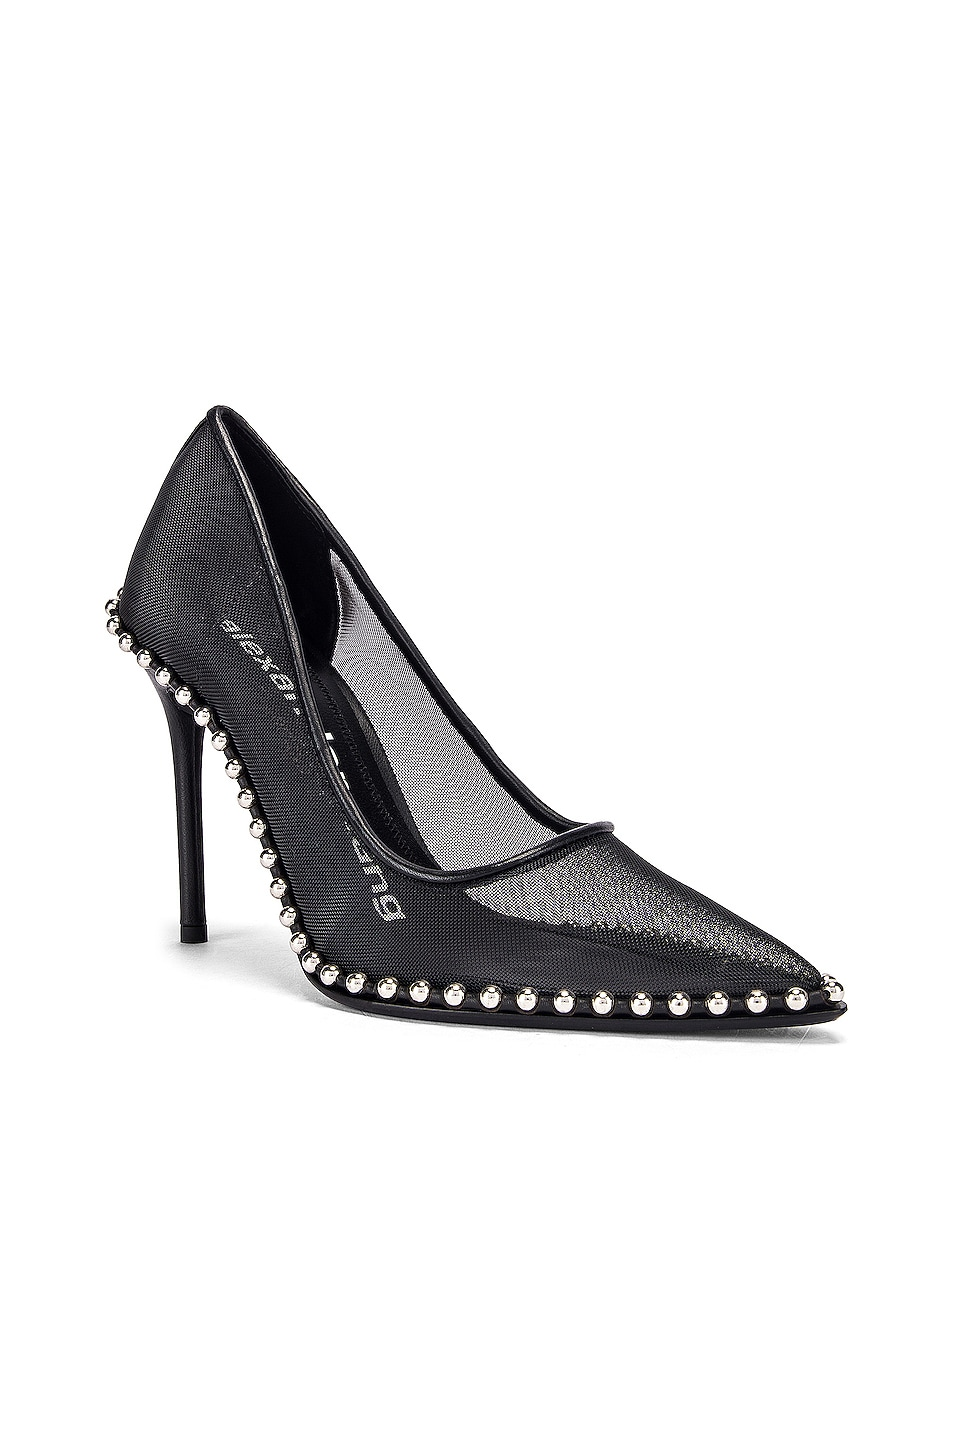 Image 2 of Alexander Wang Rie Mesh Heel in Black